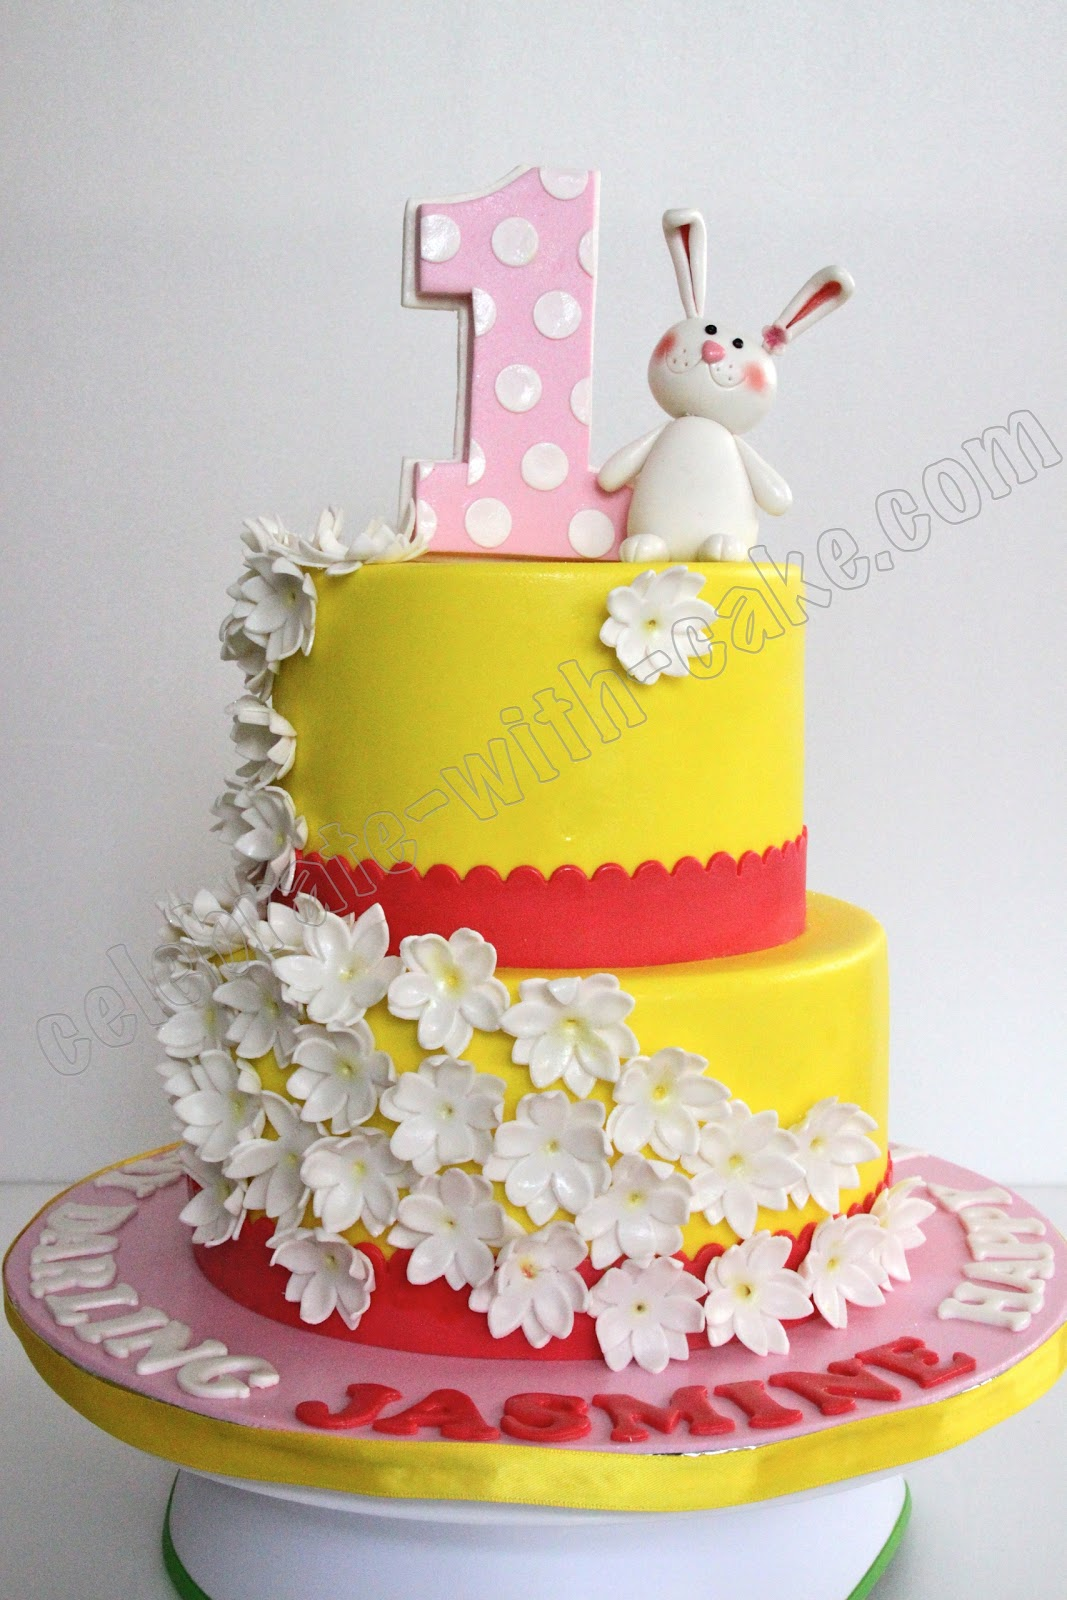 Celebrate with cake jasmine flowers and bunny cake her little girls first birthday party her little girls name was jasmine and so mommy v wanted us to make jasmine flowers the main theme for the cake izmirmasajfo